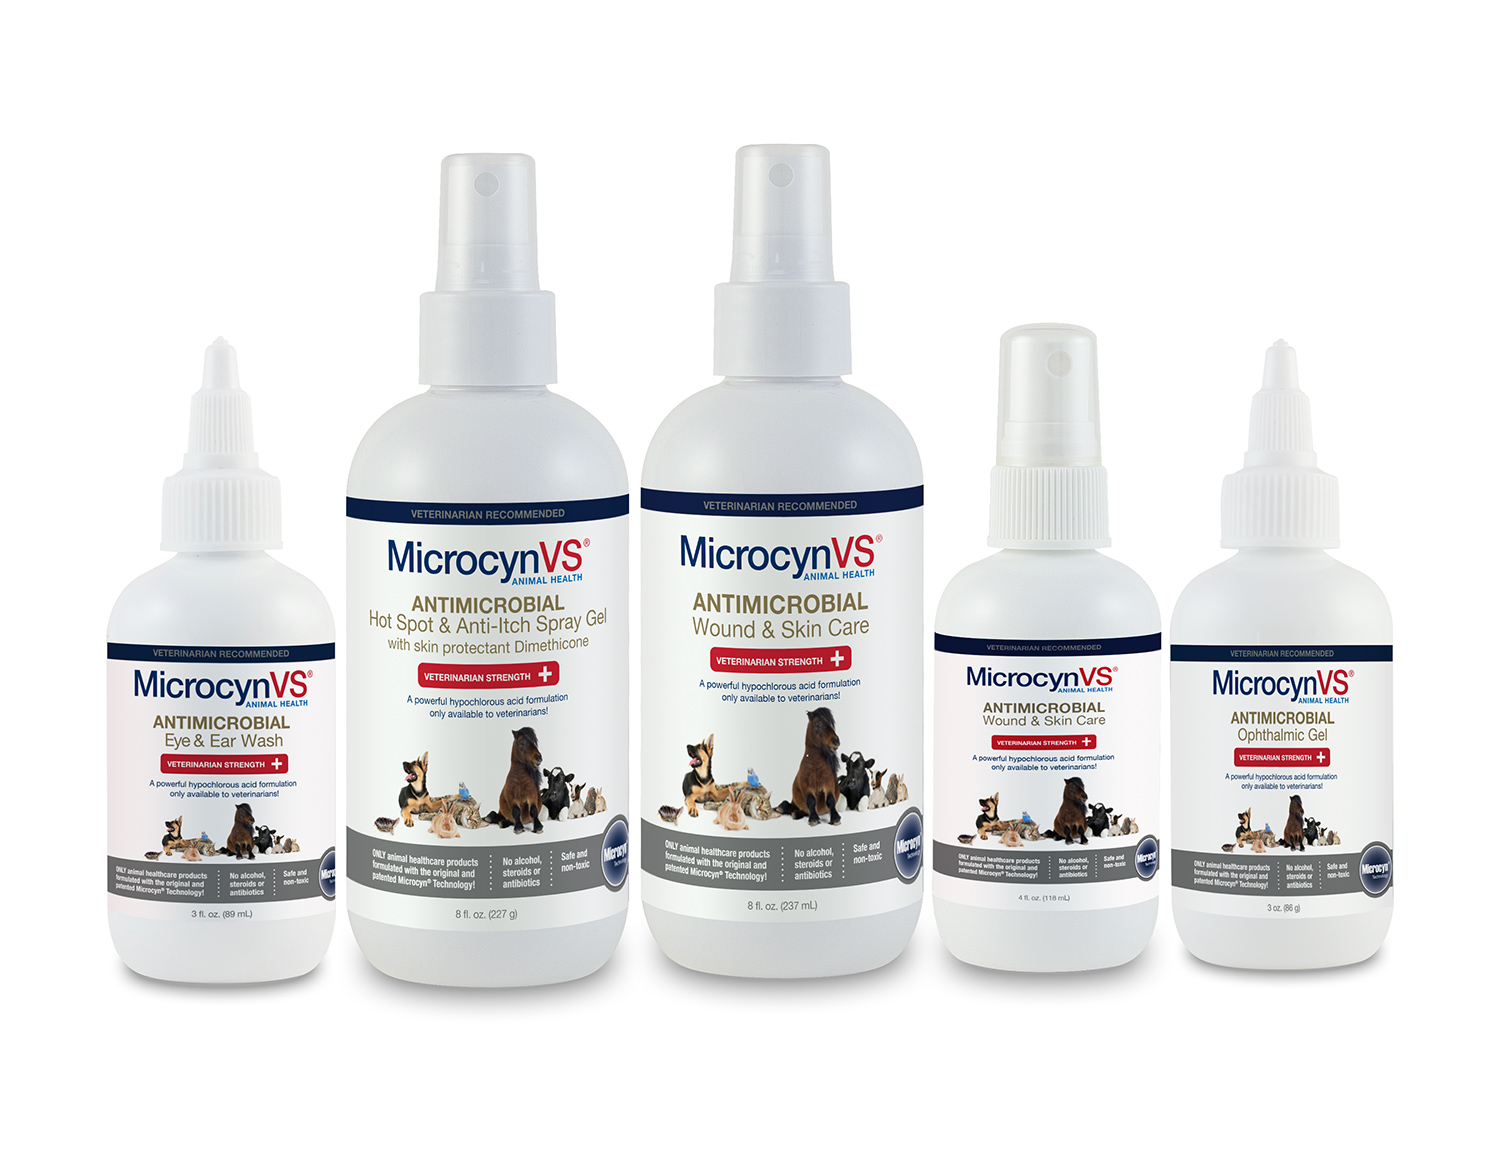 MicrocynVS Product Line